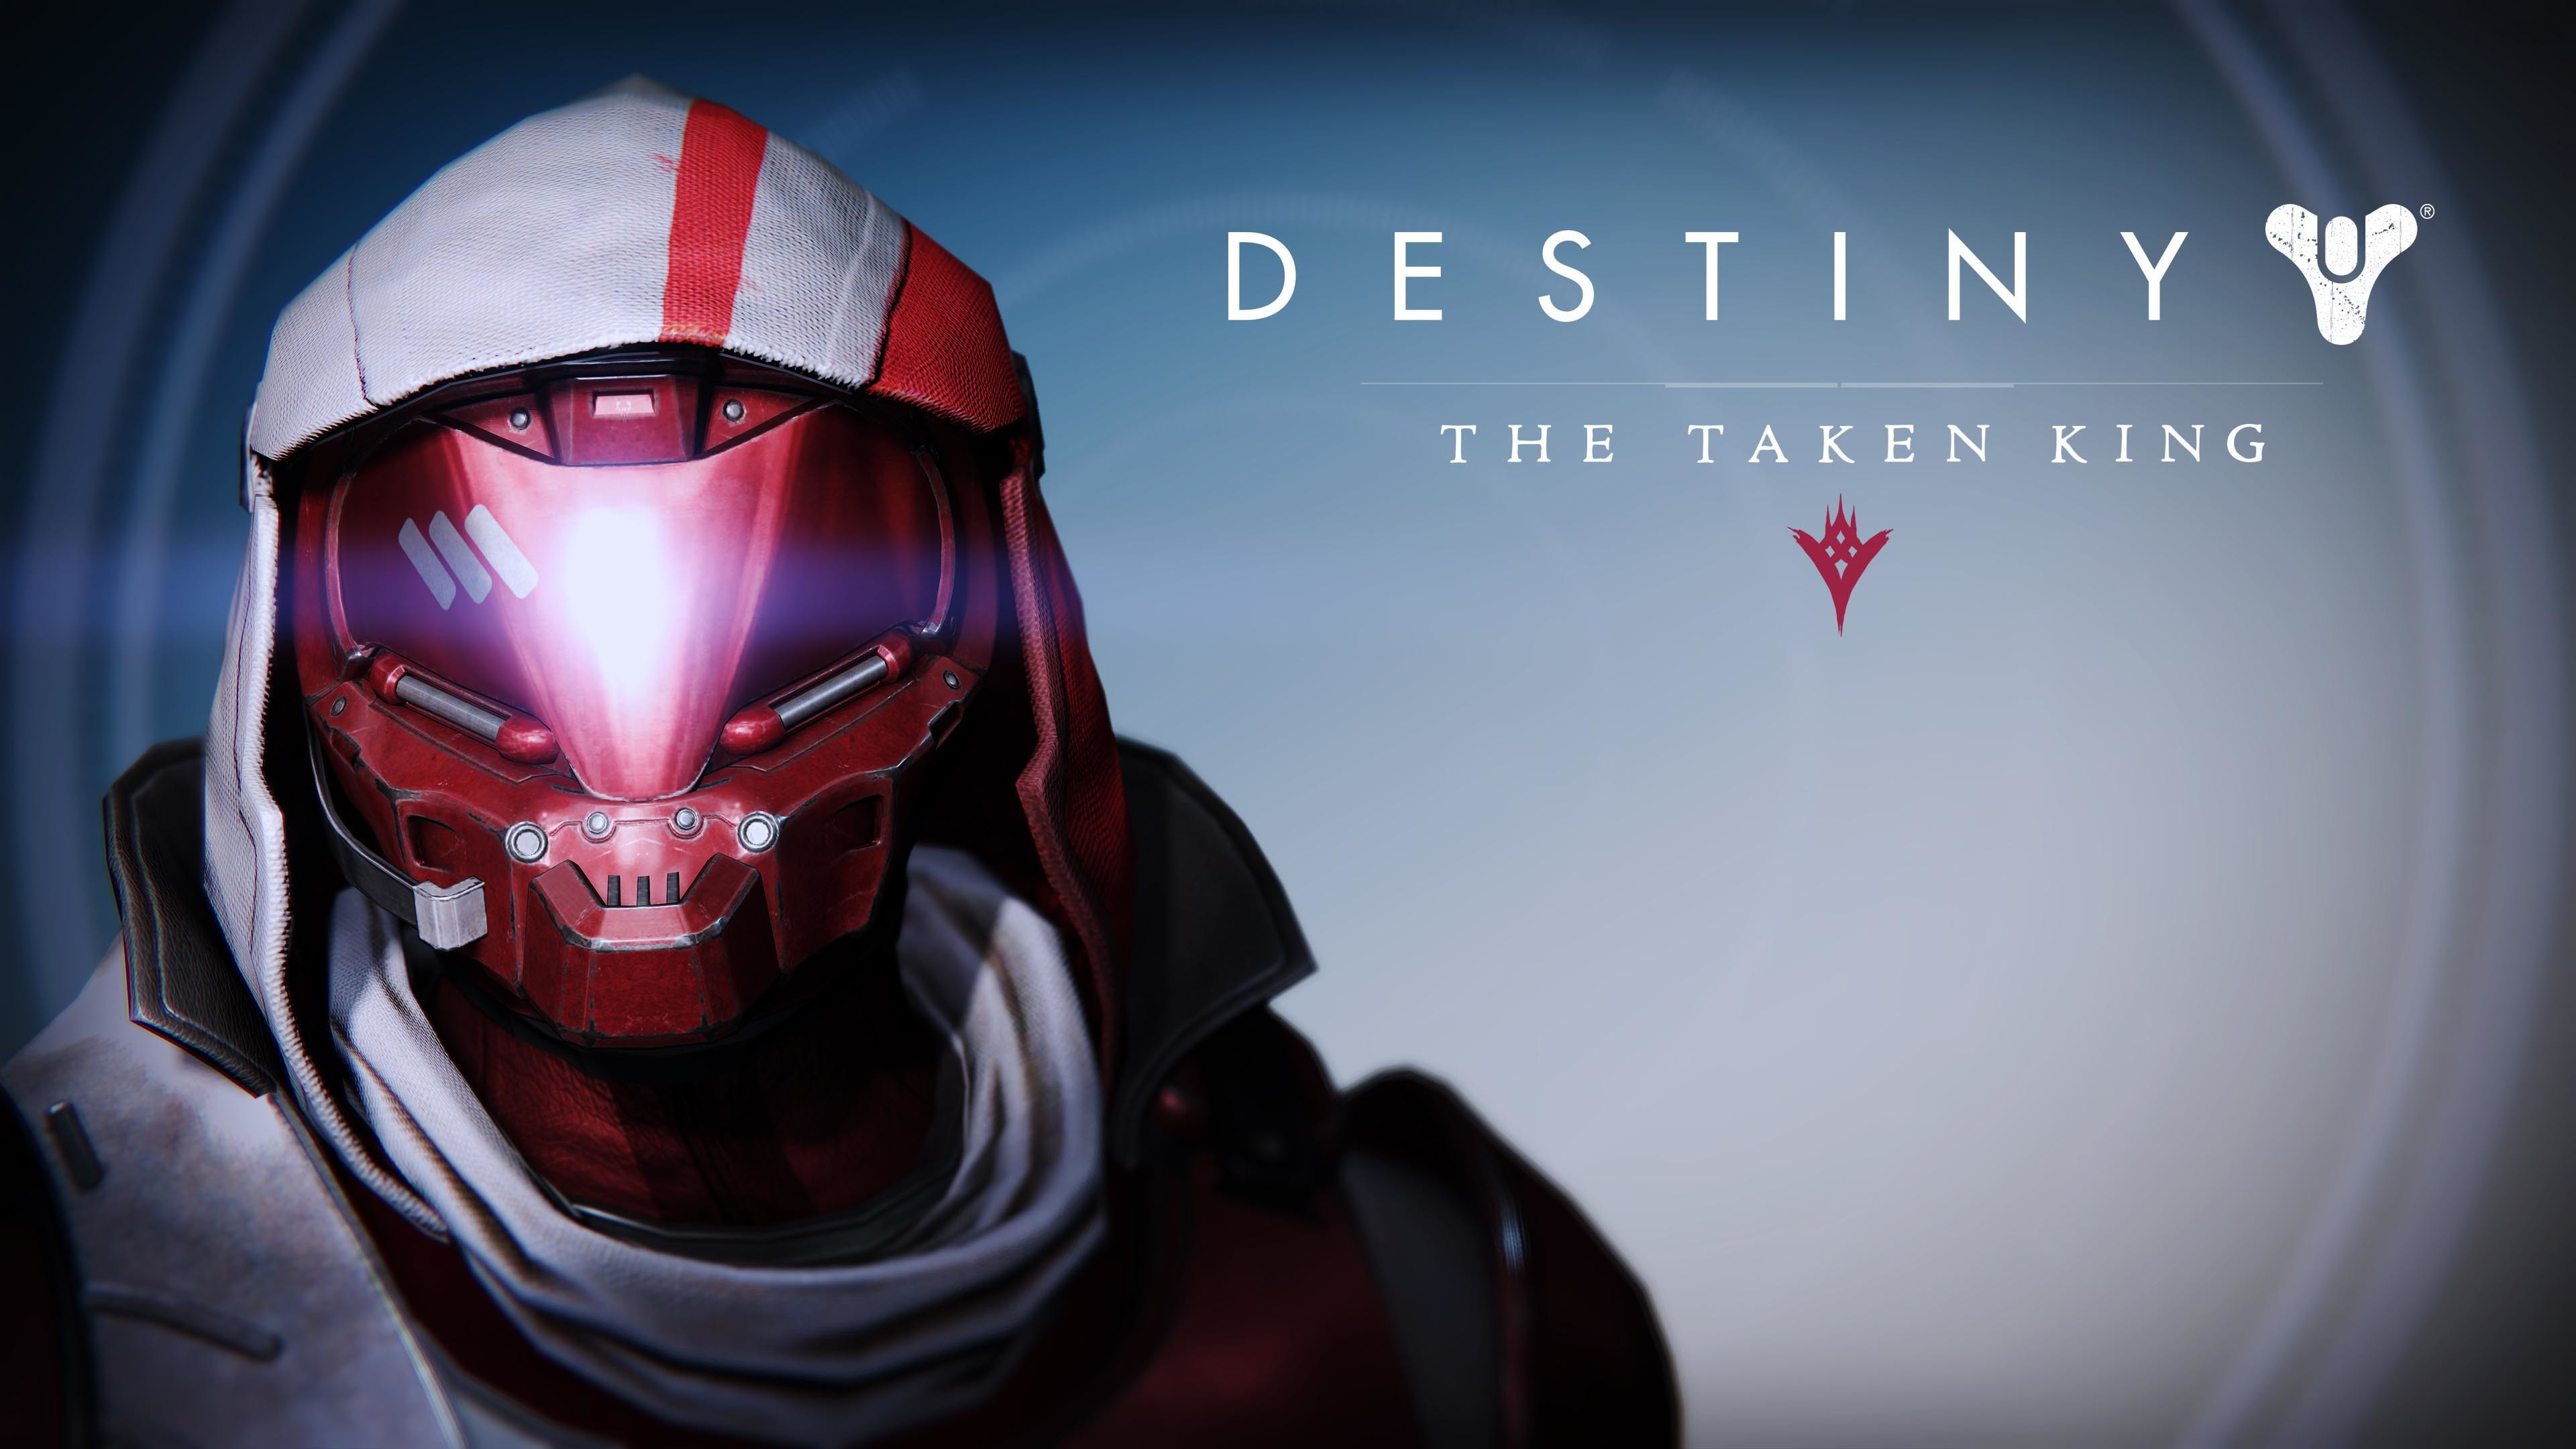 3840x2160 Destiny New Monarchy Hunter Male Helmet - Destiny The Taken King   wallpaper